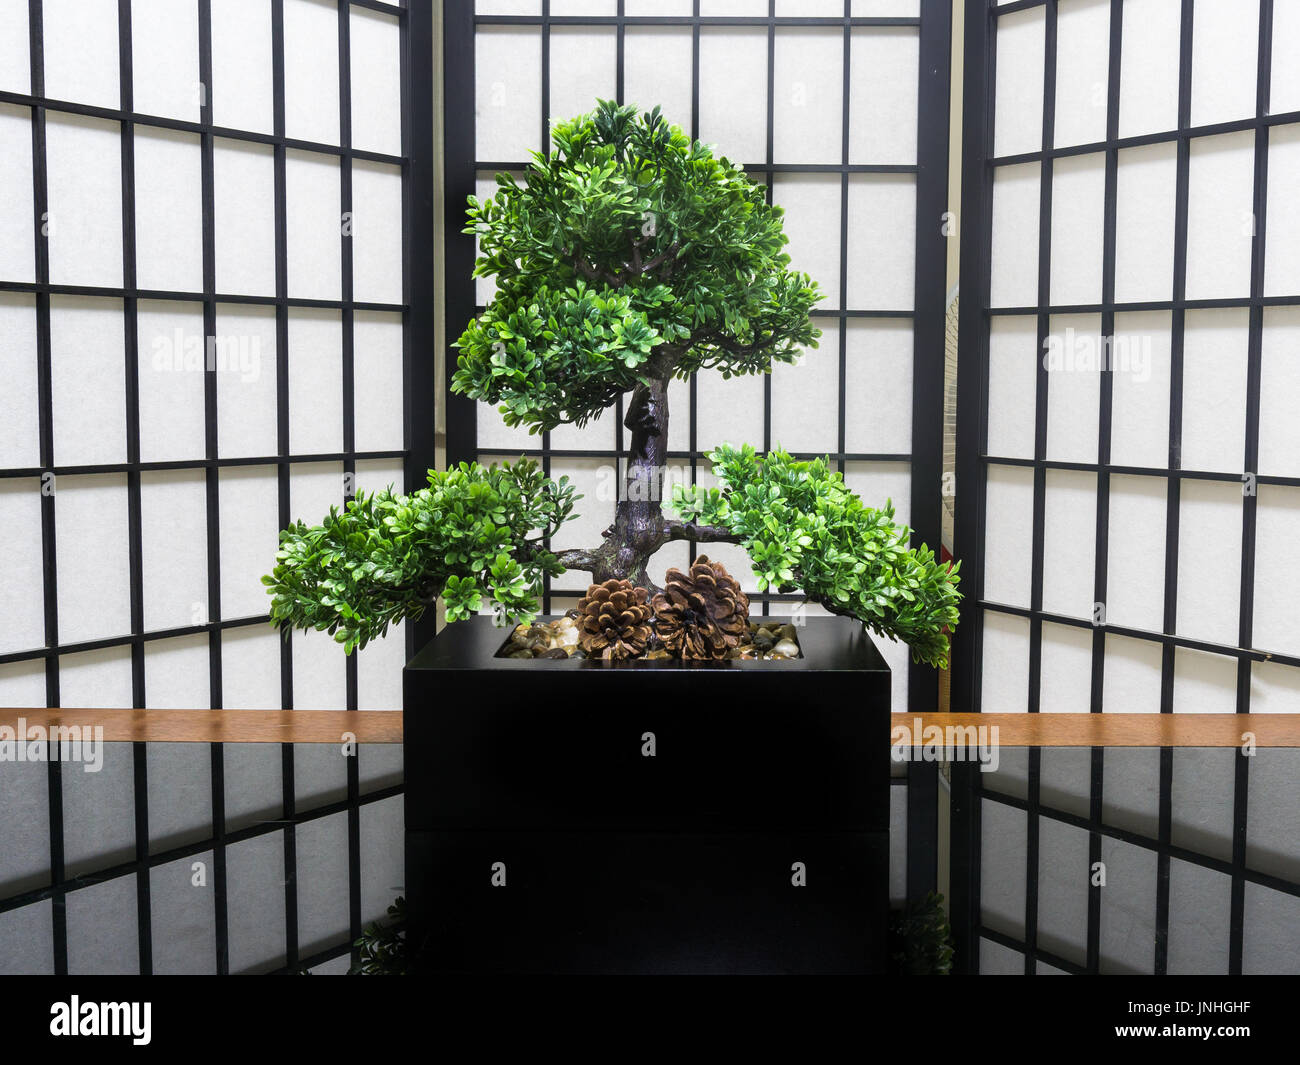 Bonsai Tree Interior Home Decoration On A Black Glass And Wooden Stock Photo Alamy